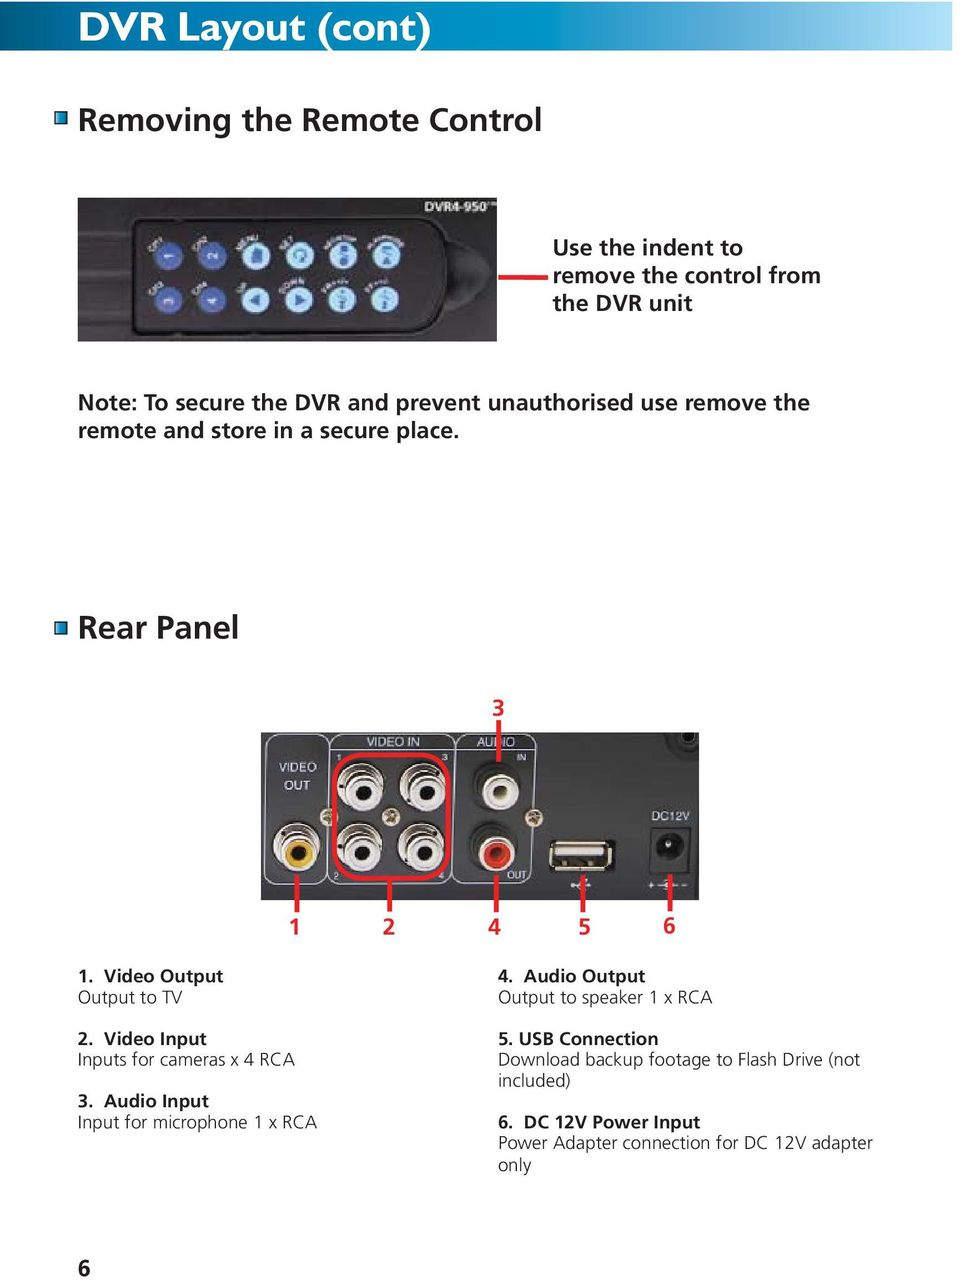 Video Input Inputs for cameras x 4 RCA 3. Audio Input Input for microphone 1 x RCA 4. Audio Output Output to speaker 1 x RCA 5.